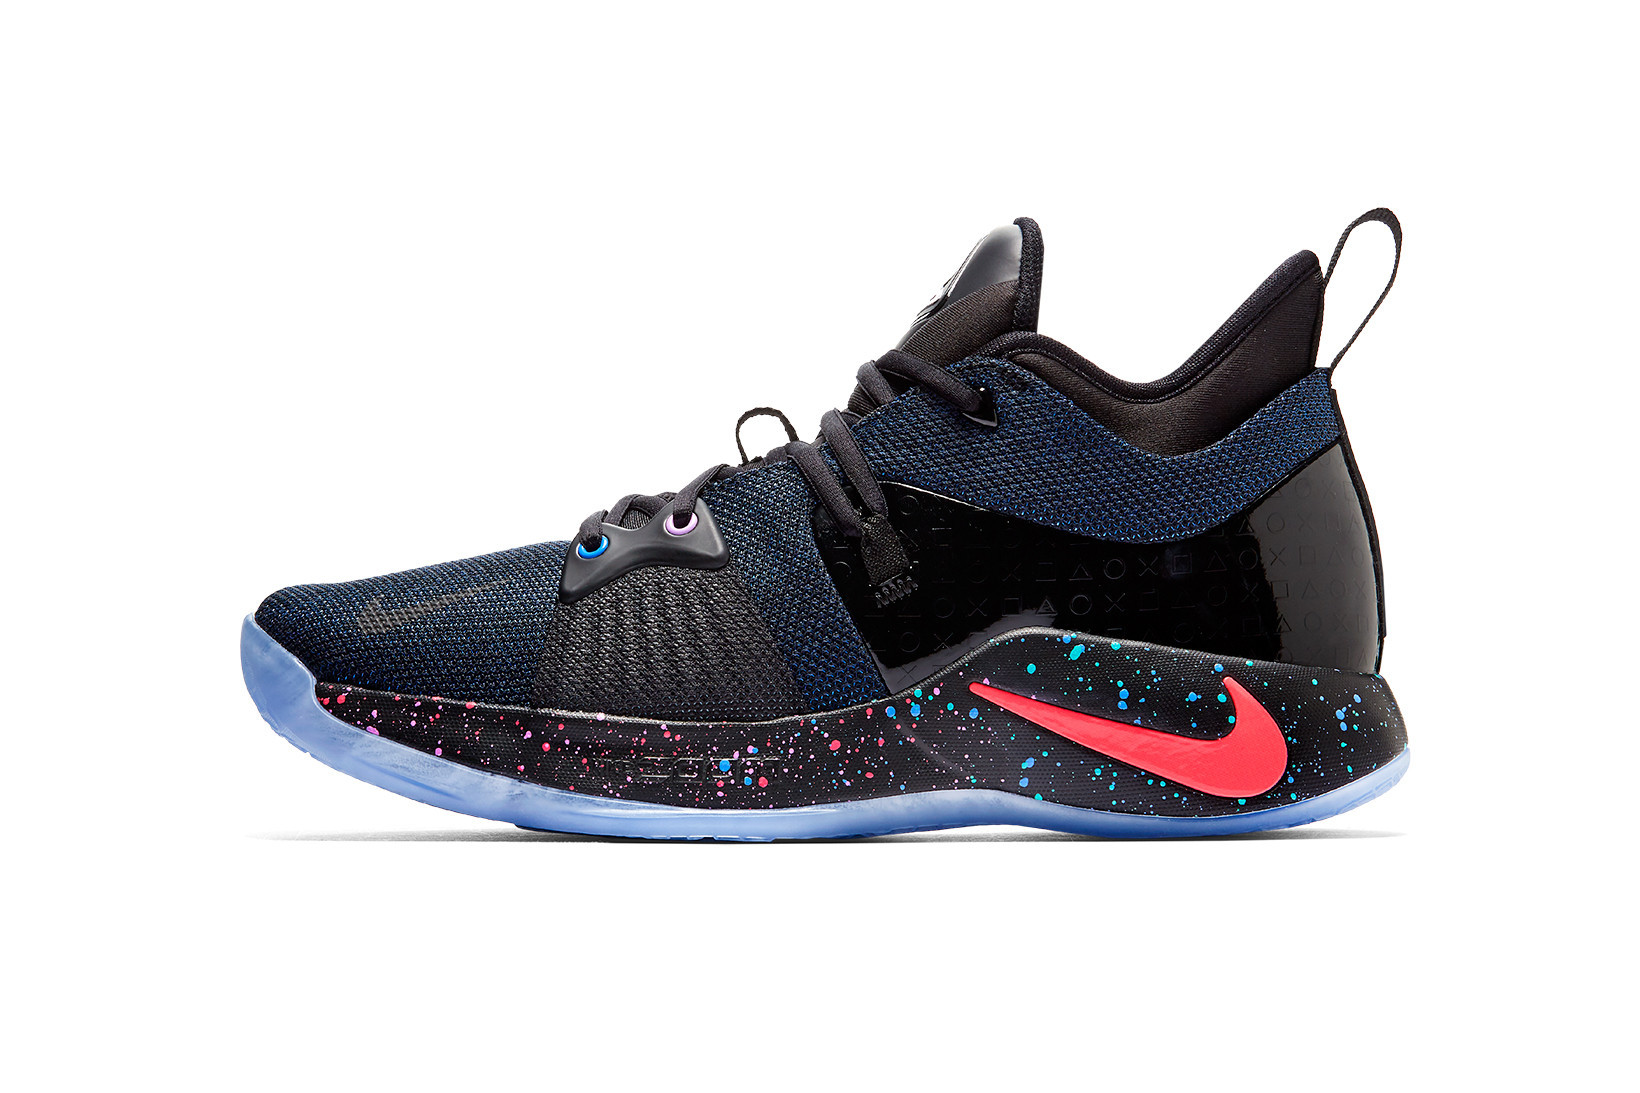 playstation x nike pg 2.5 release date